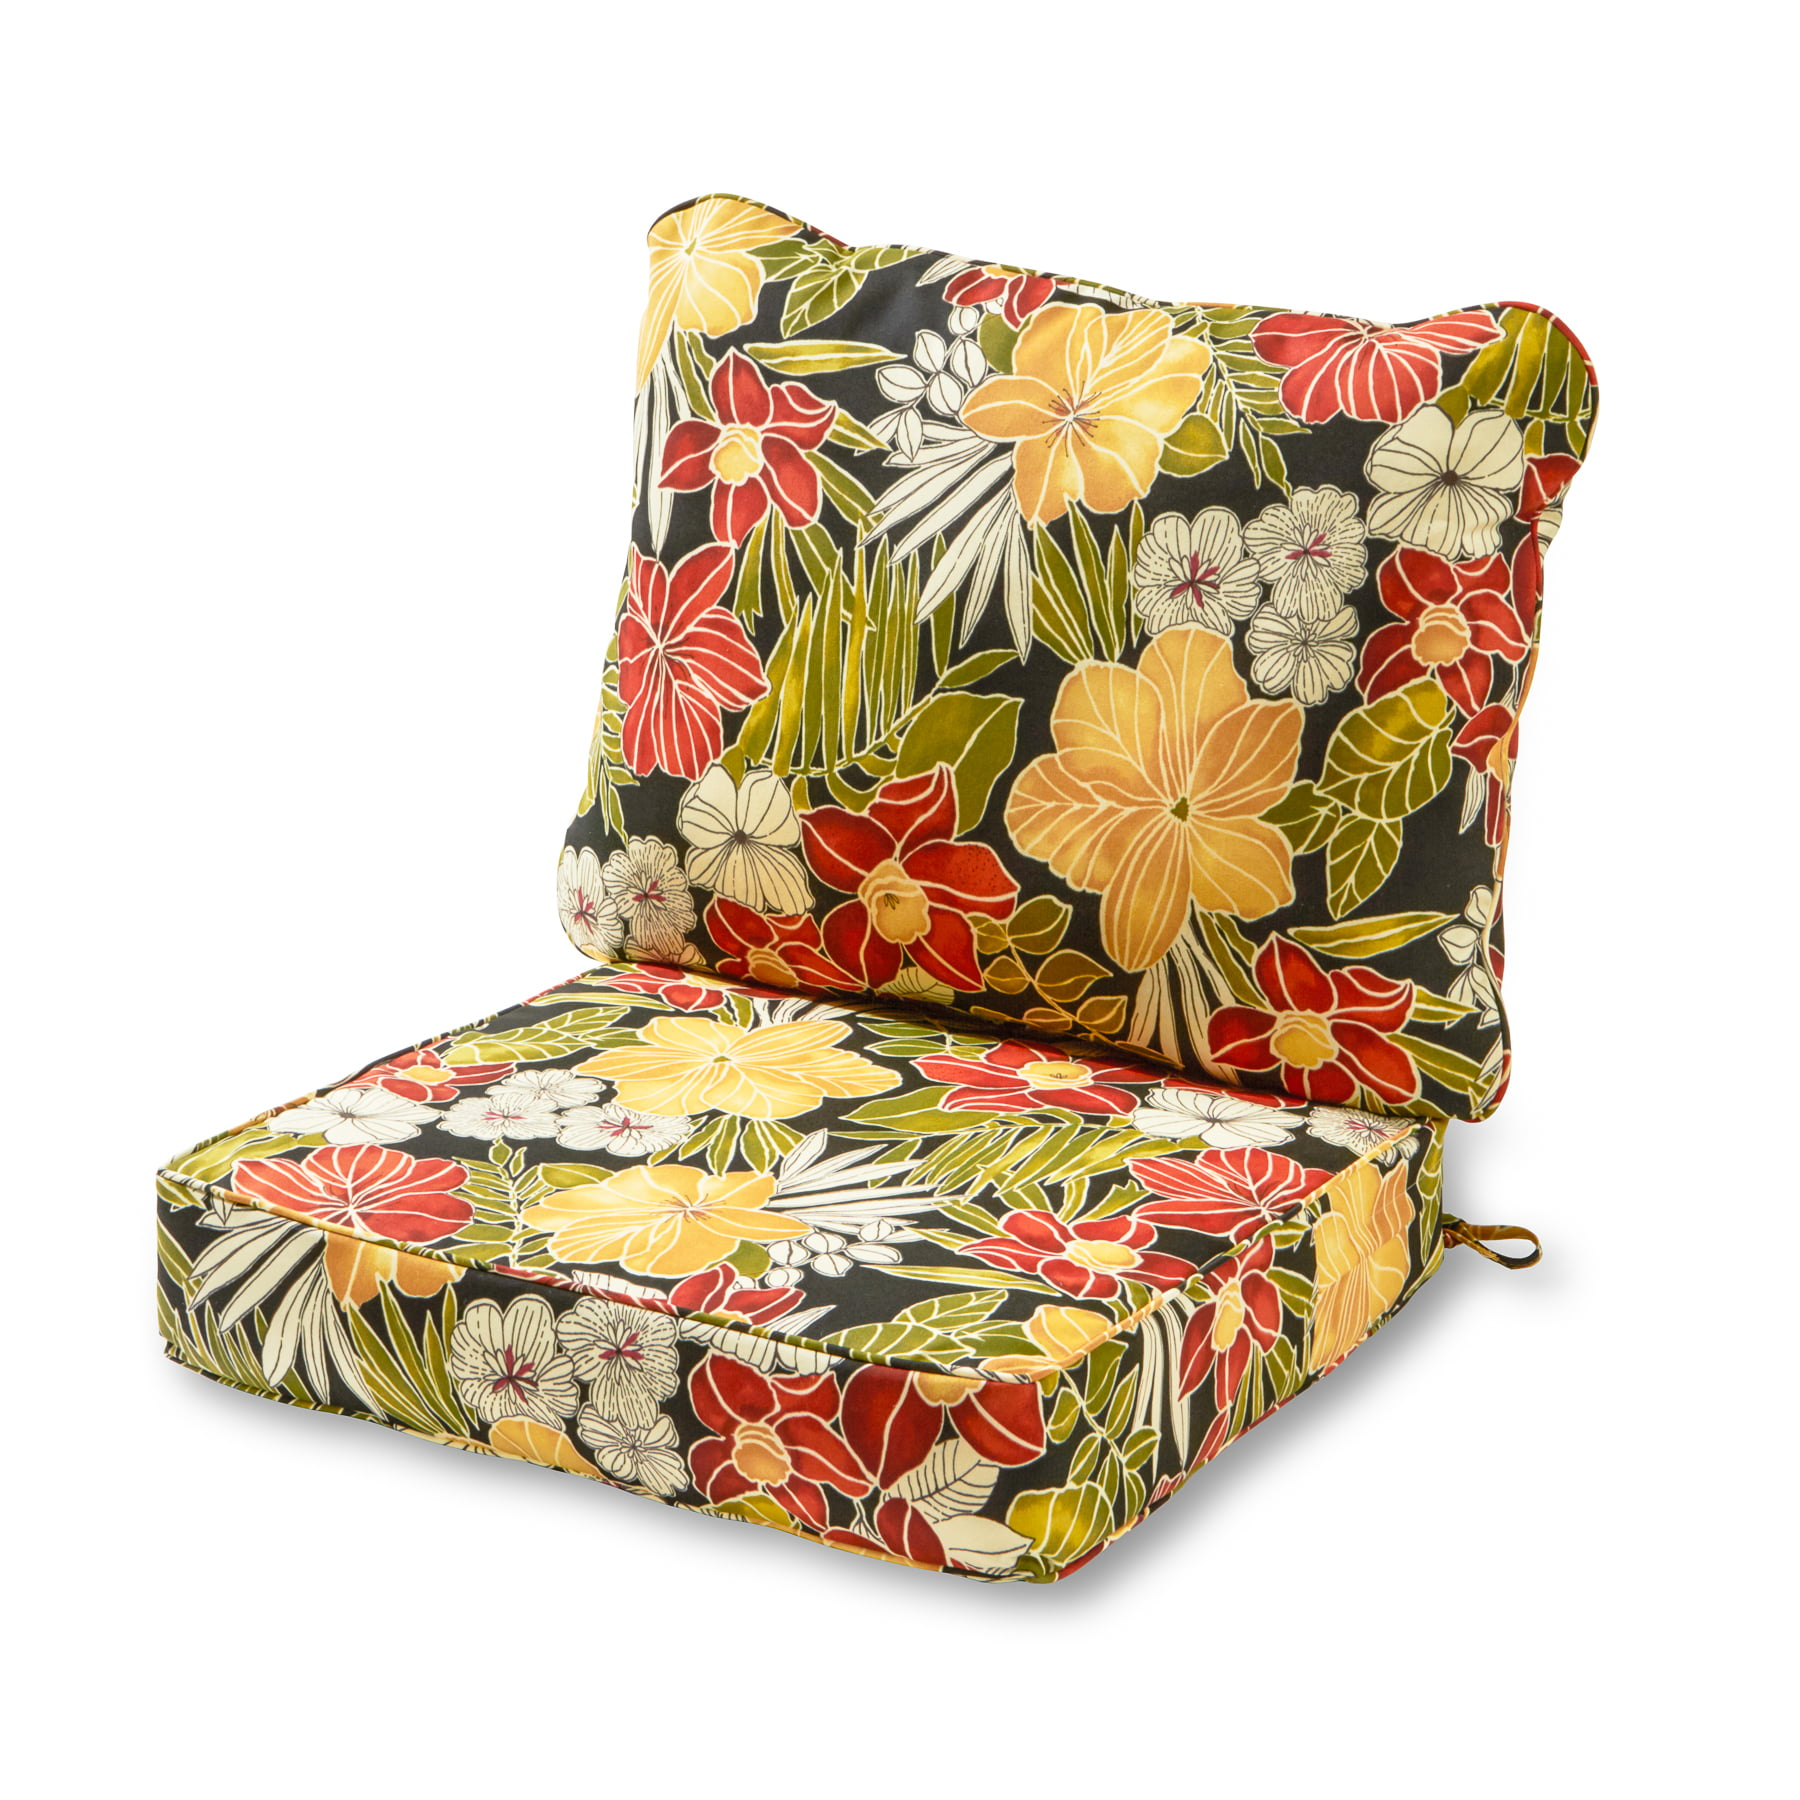 Greendale Home Fashions Outdoor Deep Seat Cushion Set, Aloha Black by Greendale Home Fashions